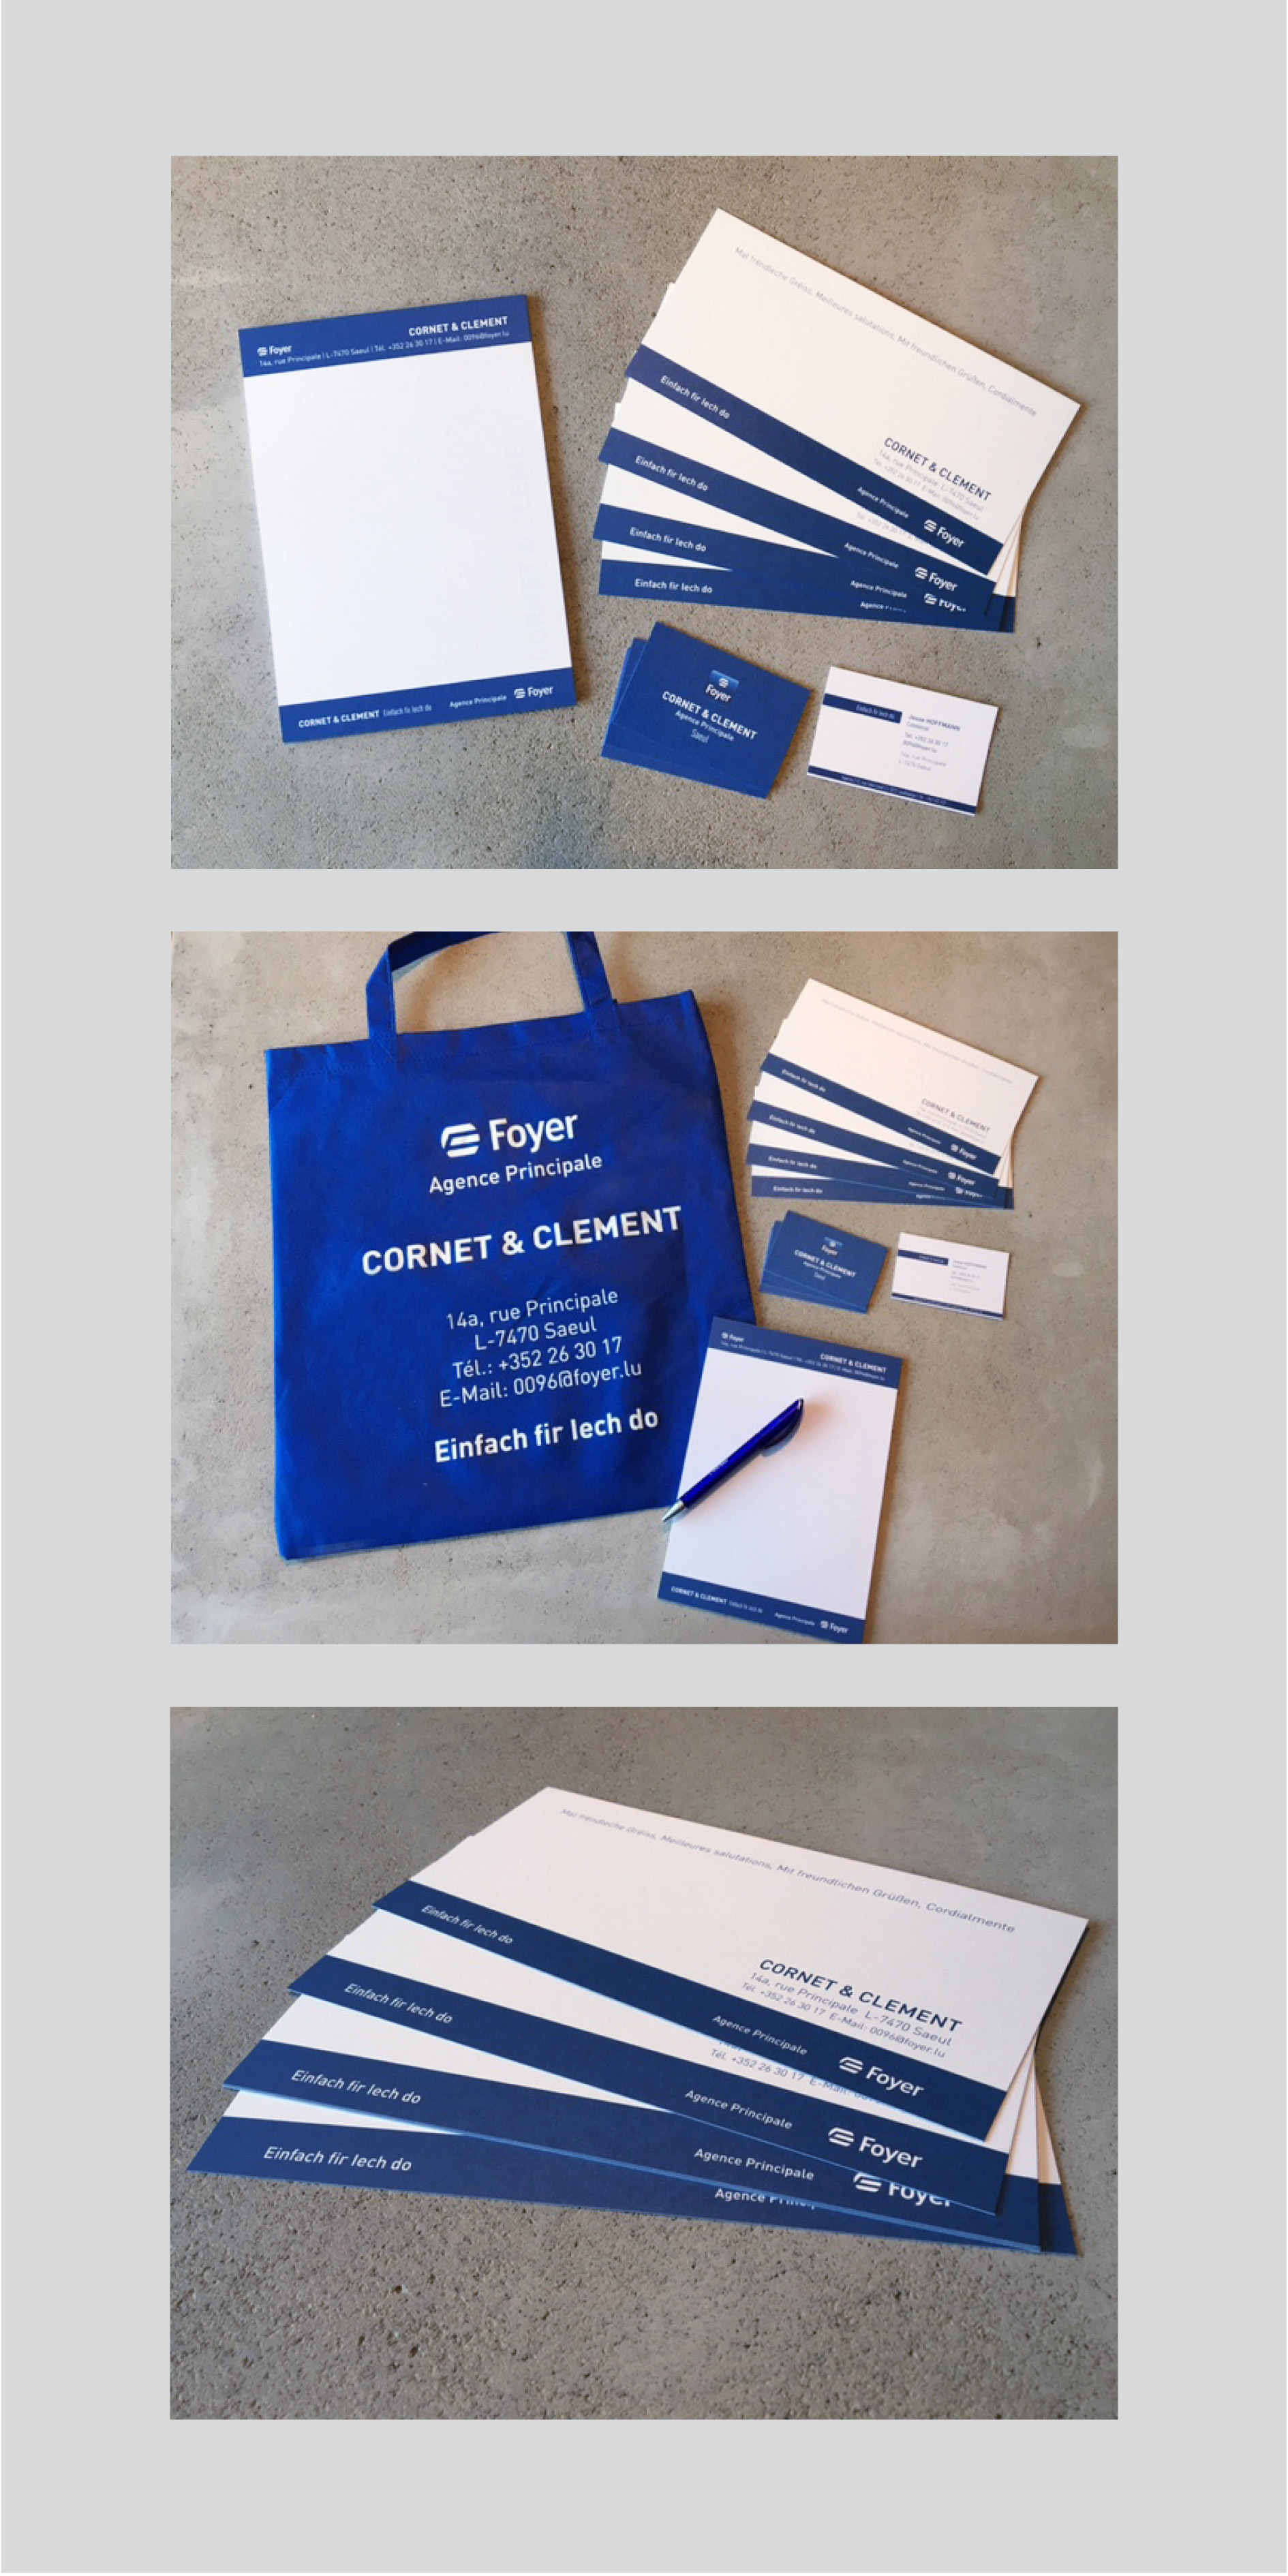 Jacoby candy agence cornet clement merchandise shopping bags and pens business cards notepad writing pad and best wishes note cards for foyer agence cornet clement reheart Image collections